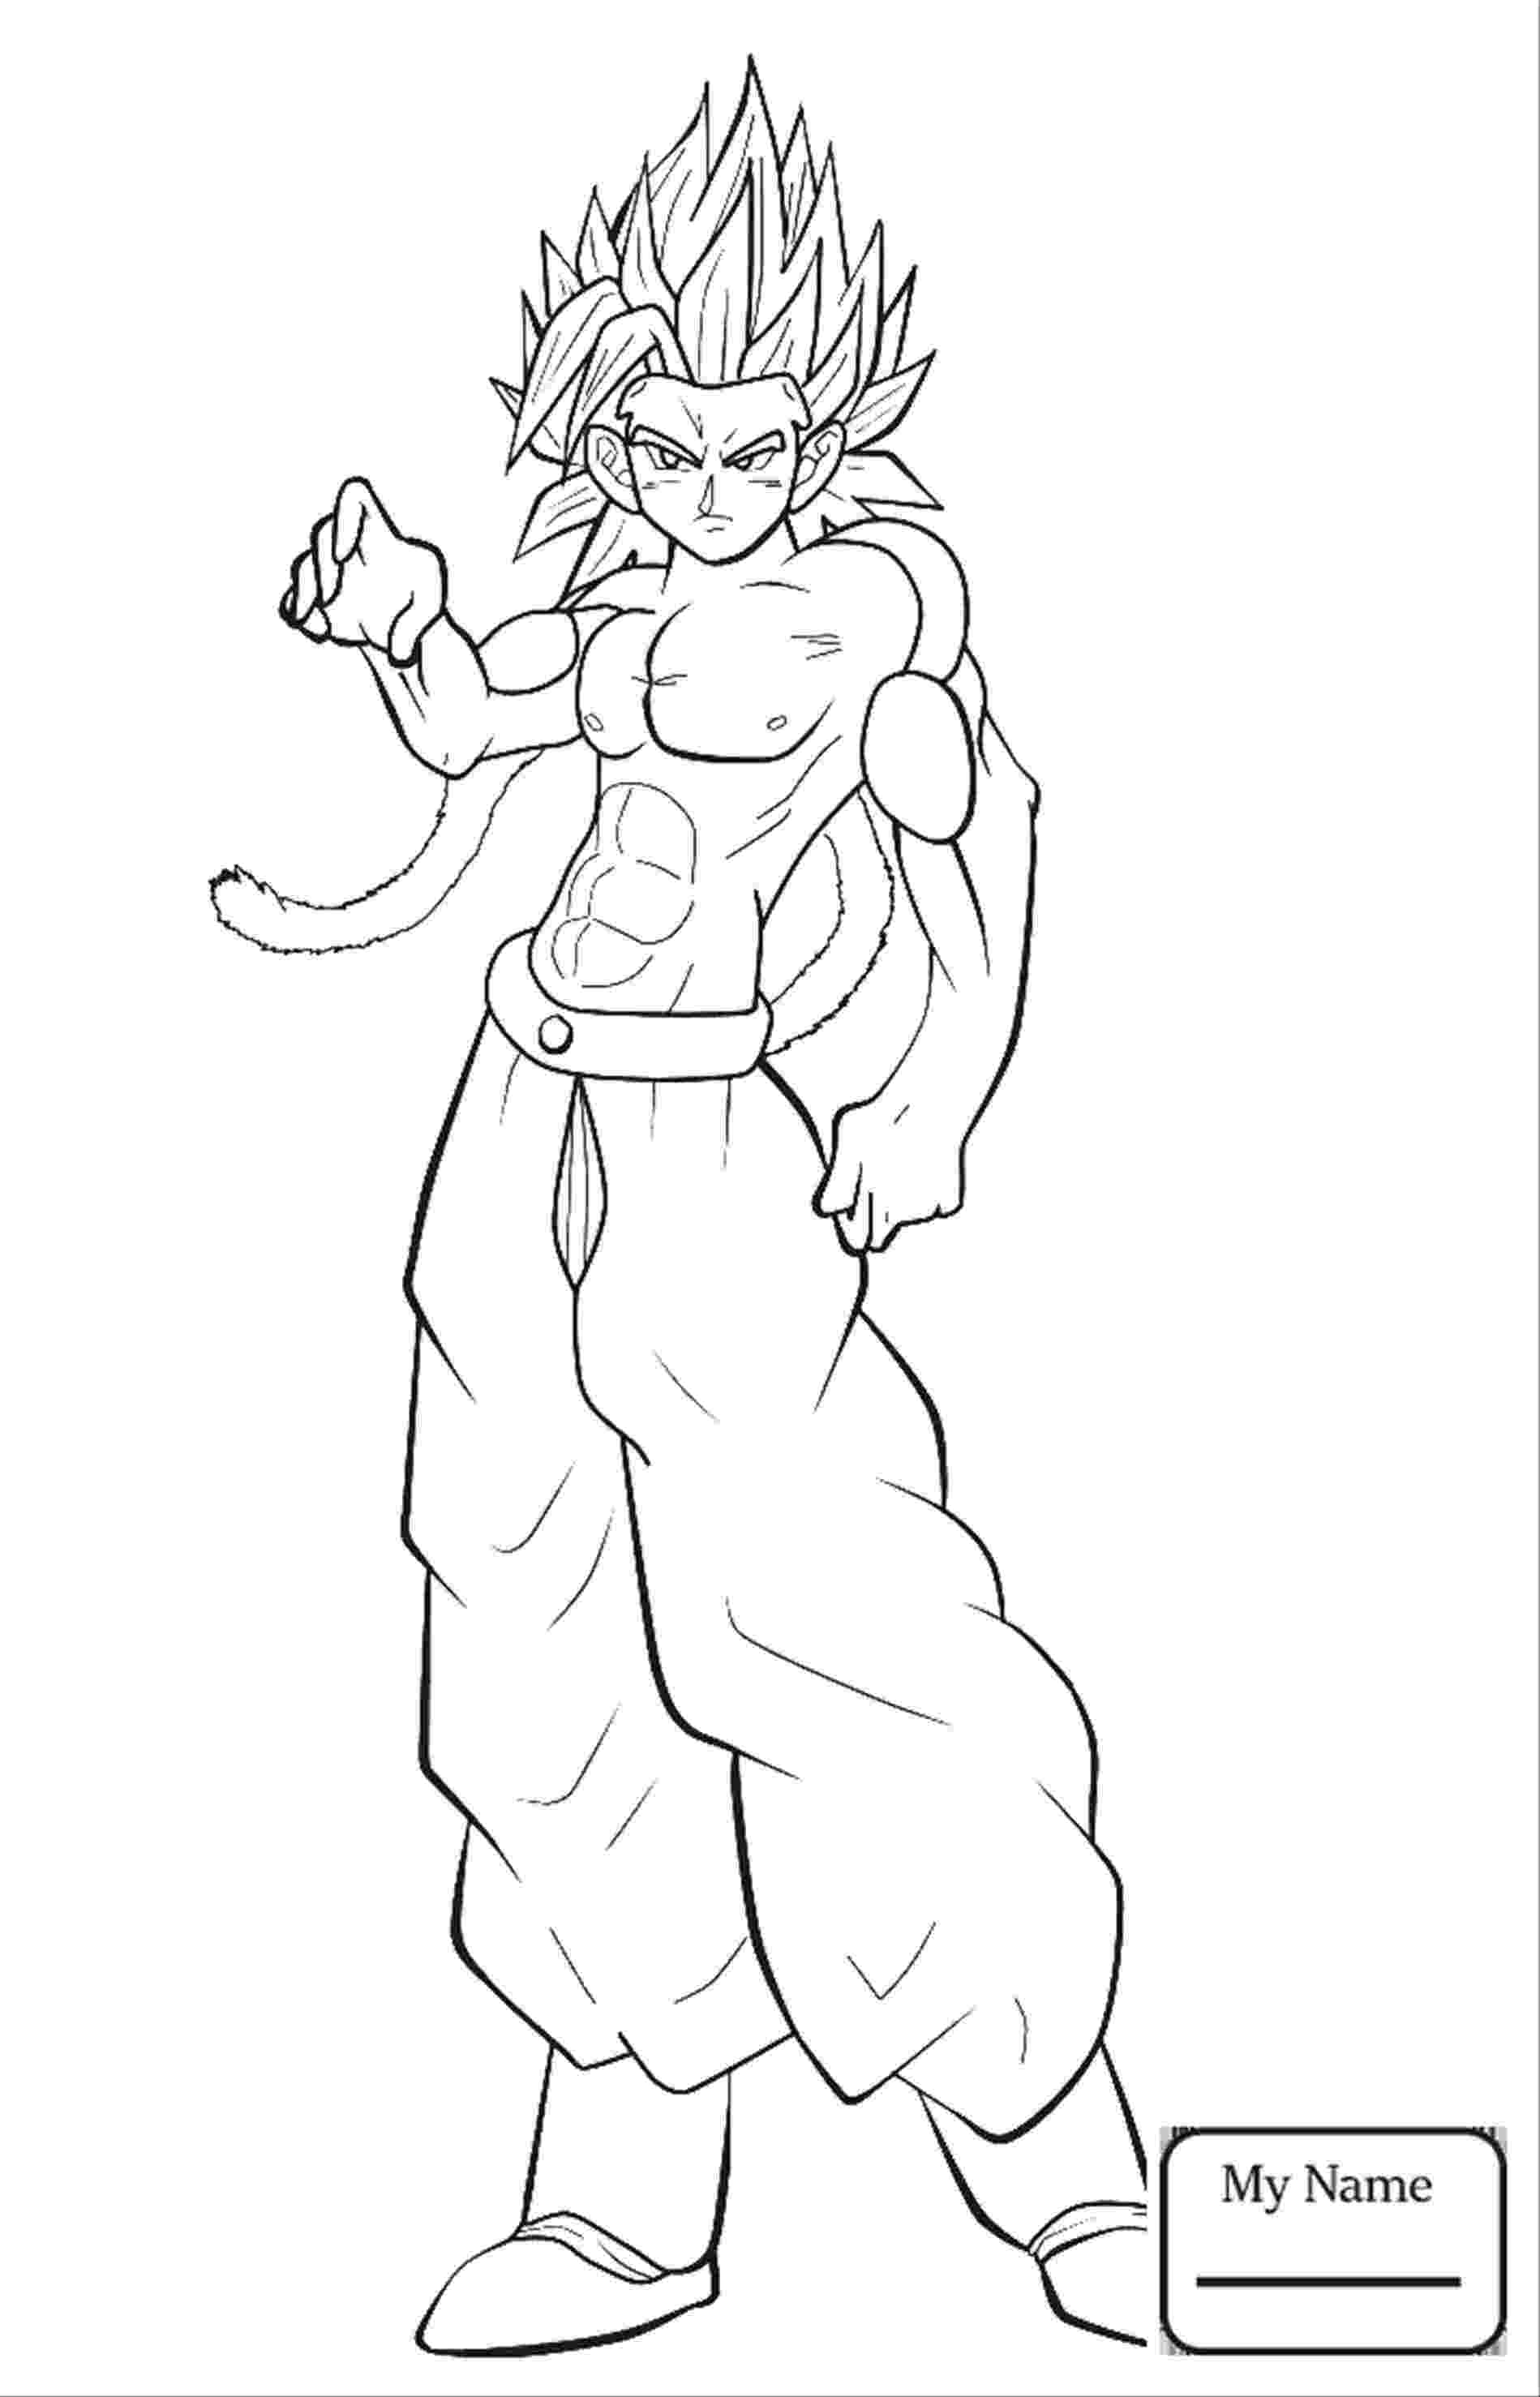 goku super saiyan coloring pages goku super saiyan 3 coloring pages at getcoloringscom saiyan pages super coloring goku